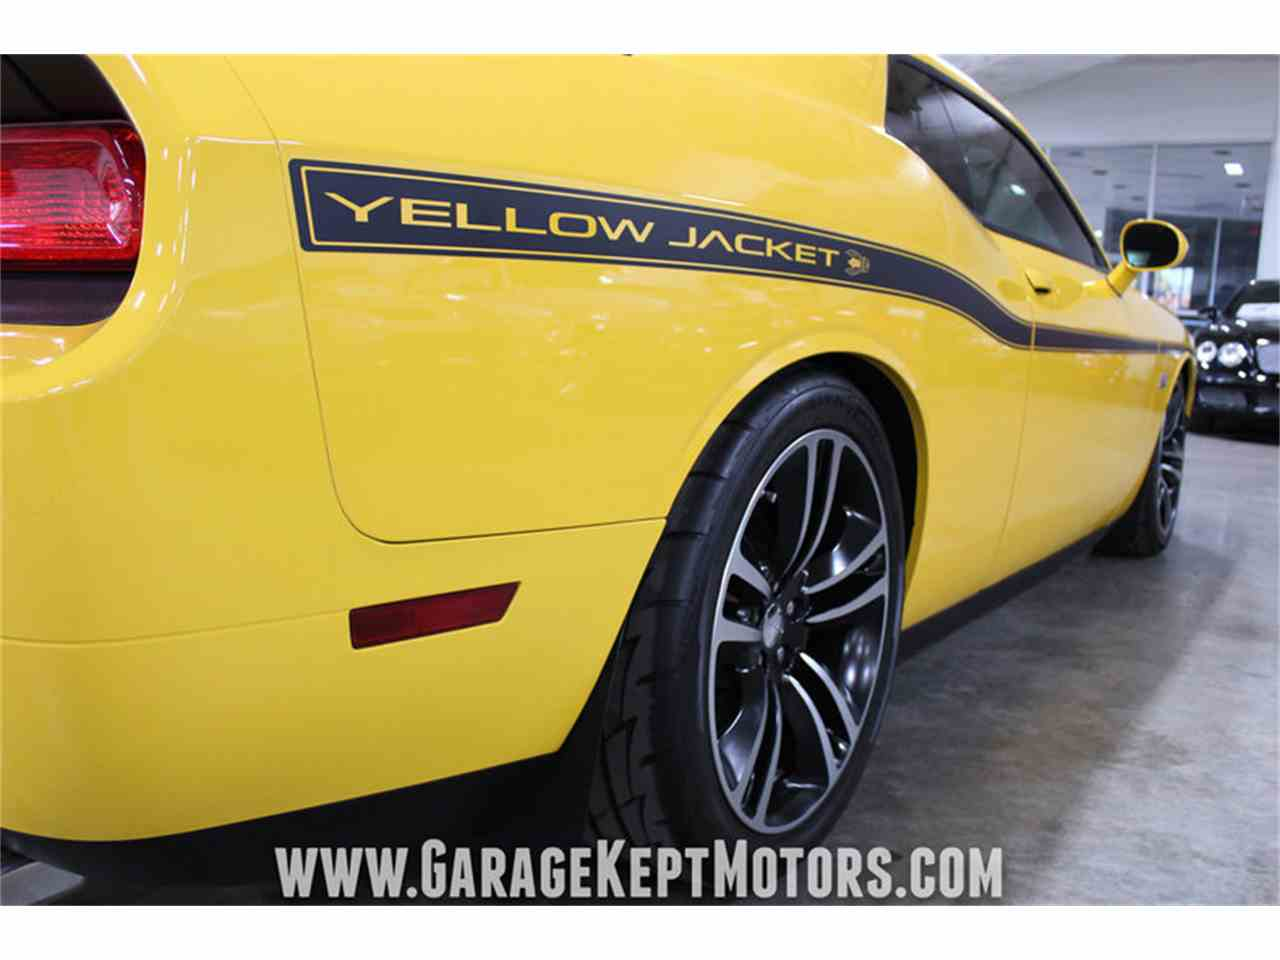 Large Picture of '12 Dodge Challenger SRT8 392 Yellow Jacket - MAXR